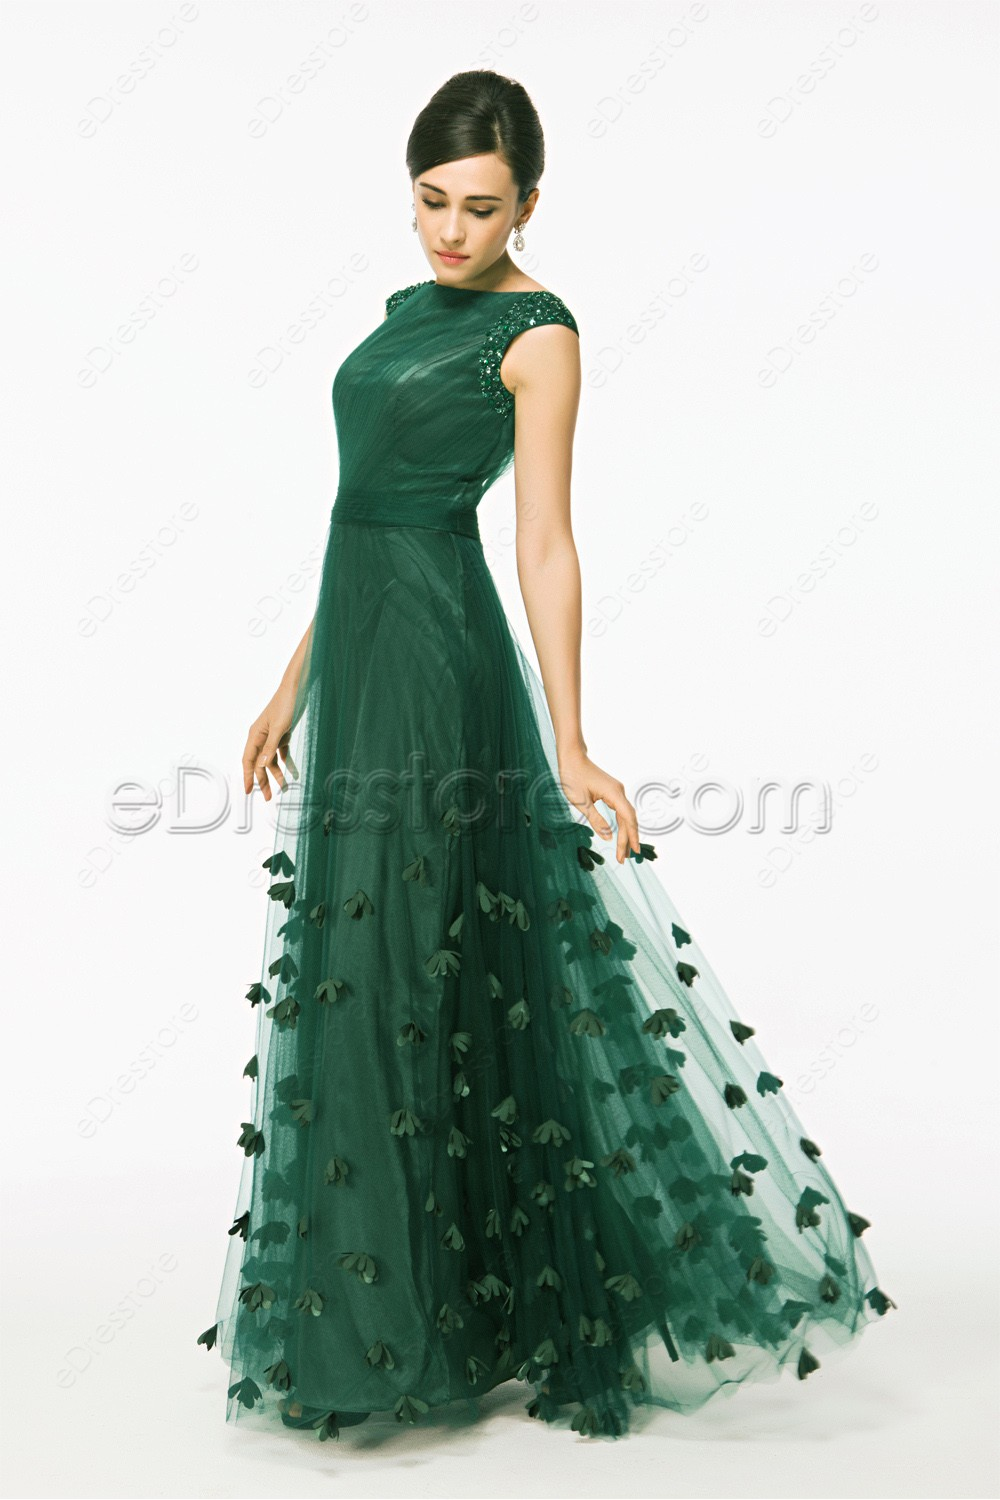 Modest Cap Sleeves Forest Green Prom Dress With Hand Sewn